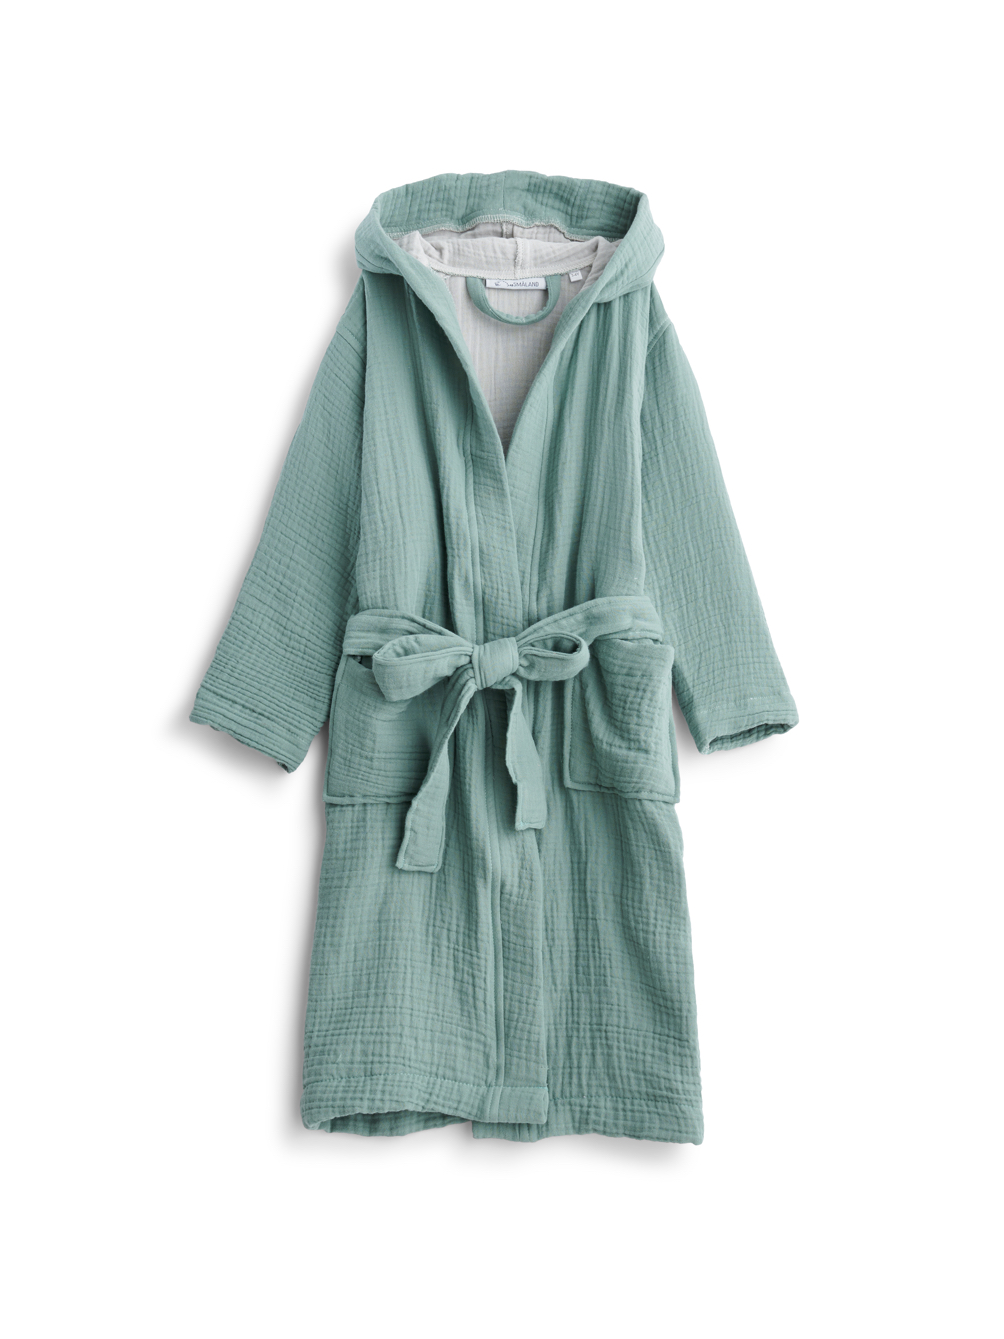 Kids Muslin Bathrobe Mineral Green